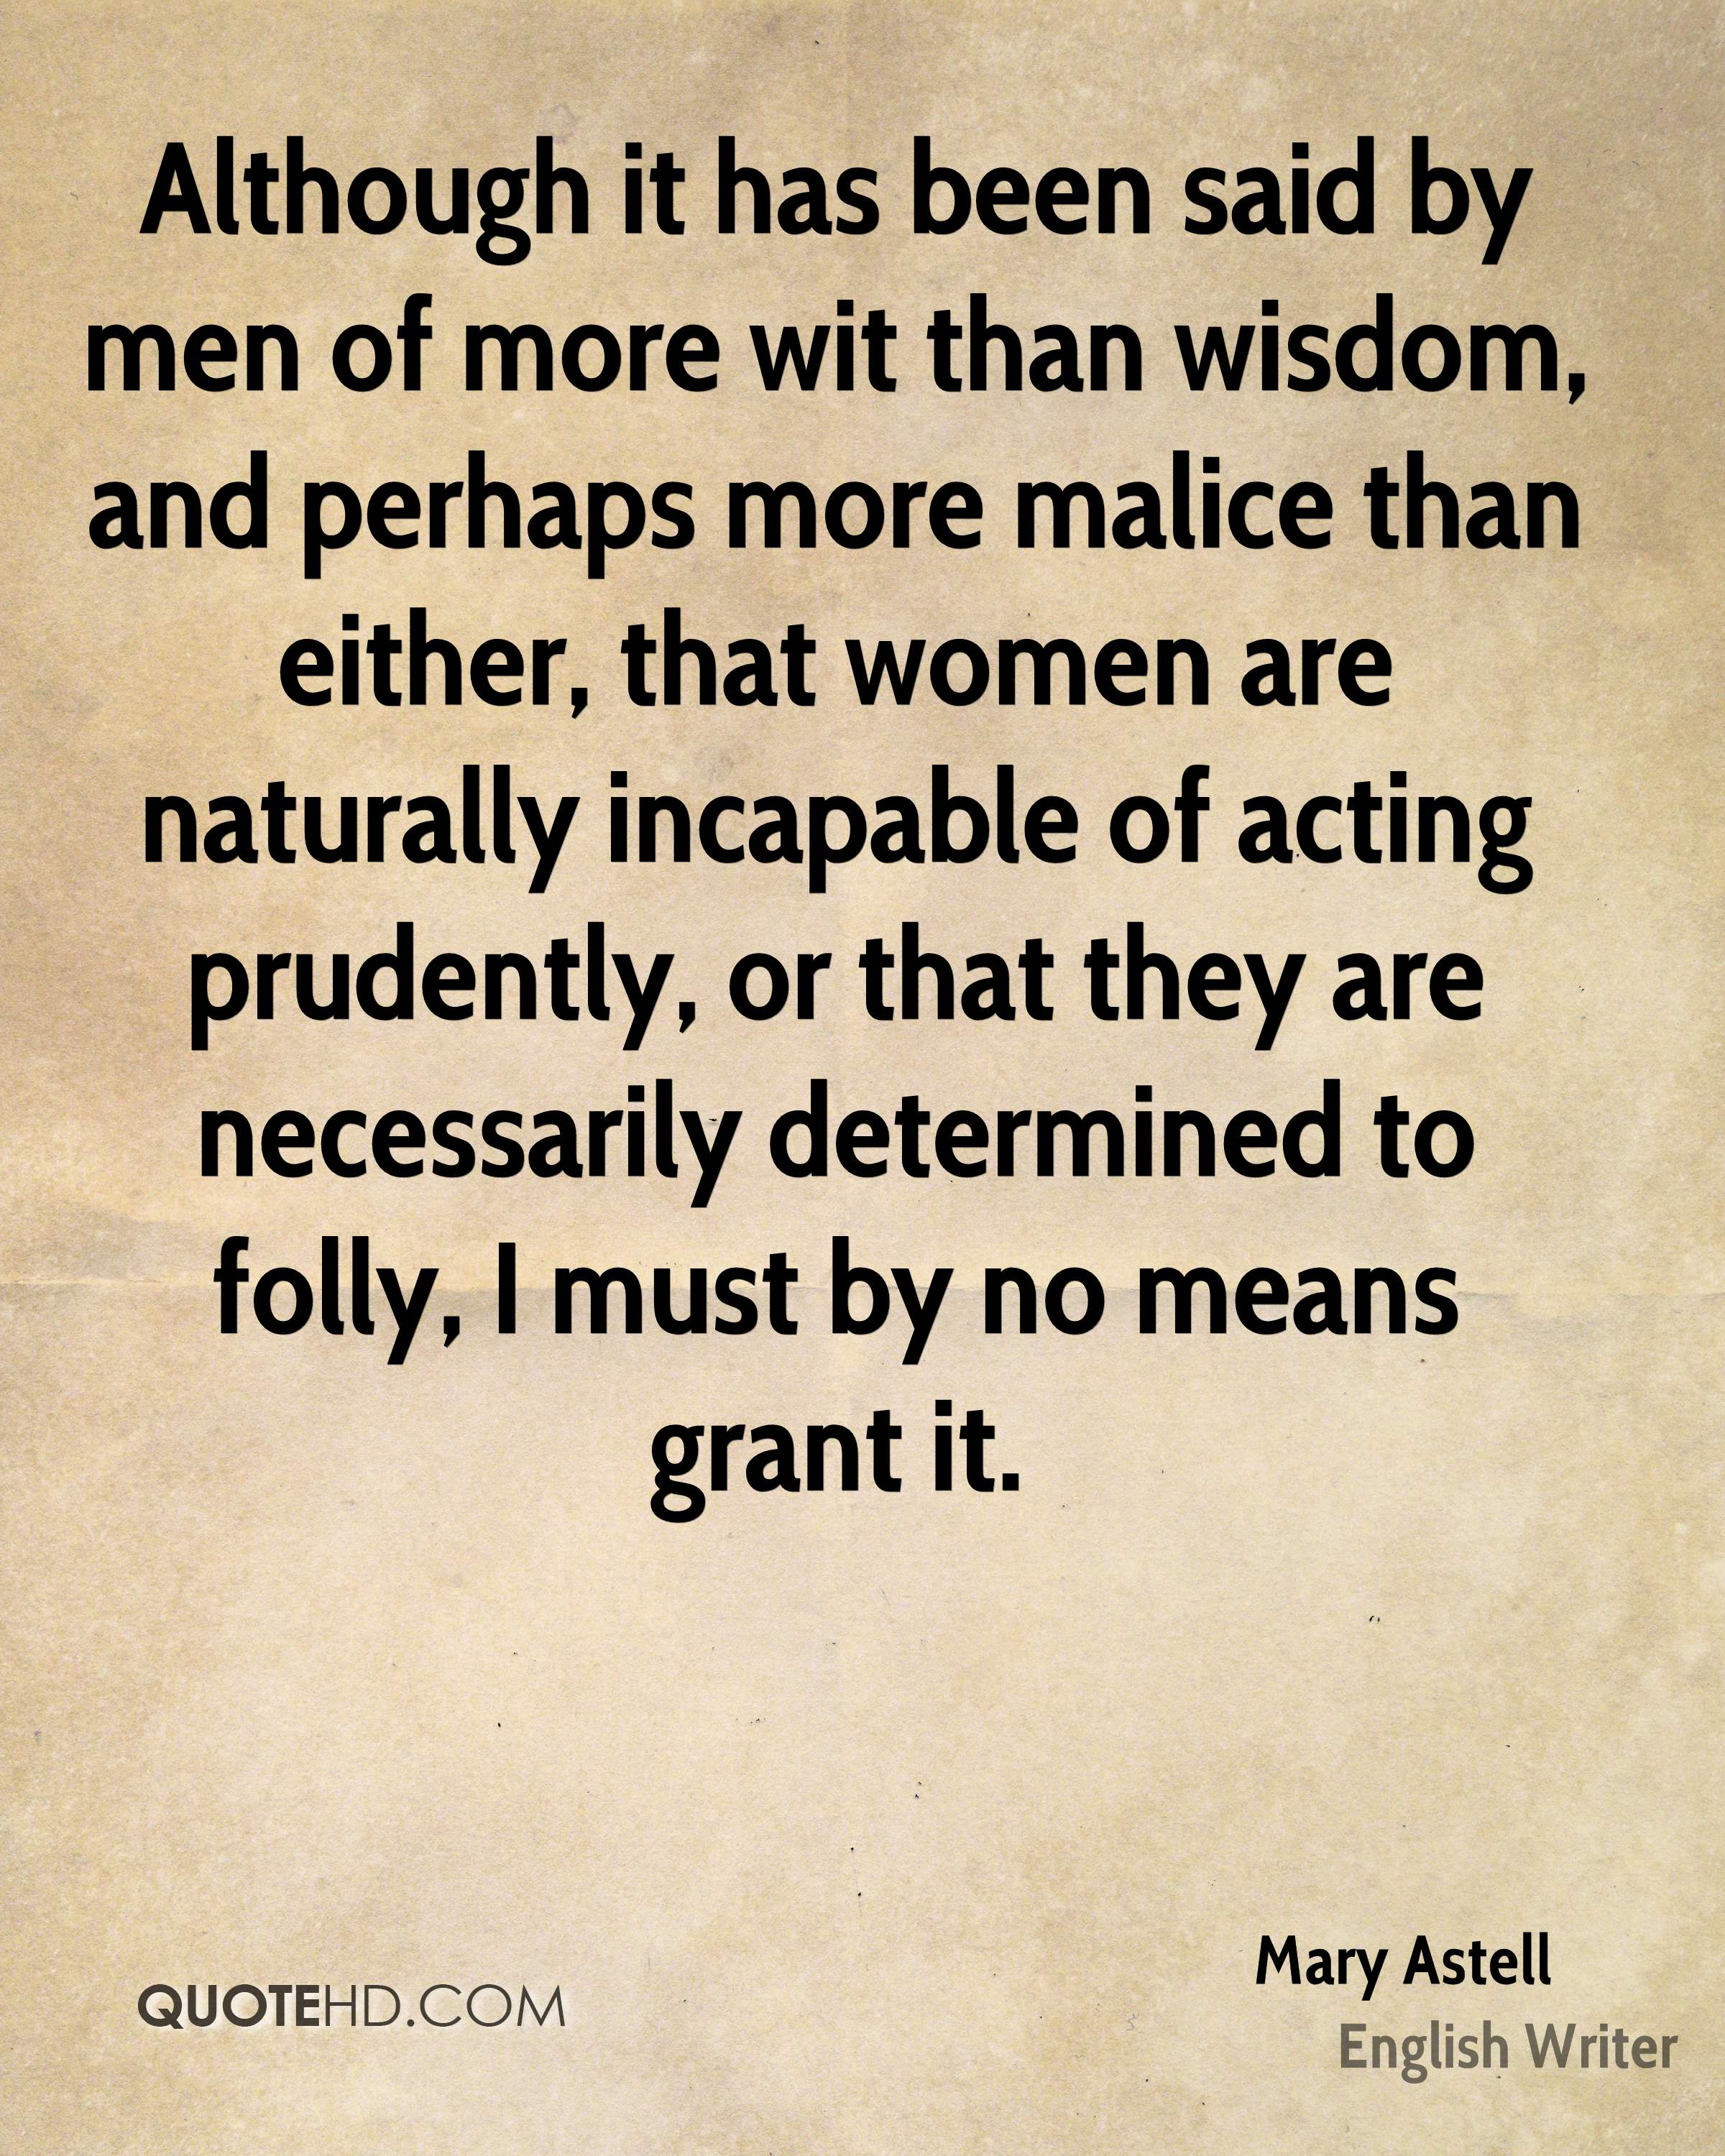 Although it has been said by men of more wit than wisdom, and perhaps more malice than either, that women are naturally incapable of acting prudently, or that they are necessarily determined to folly, I must by no means grant it.